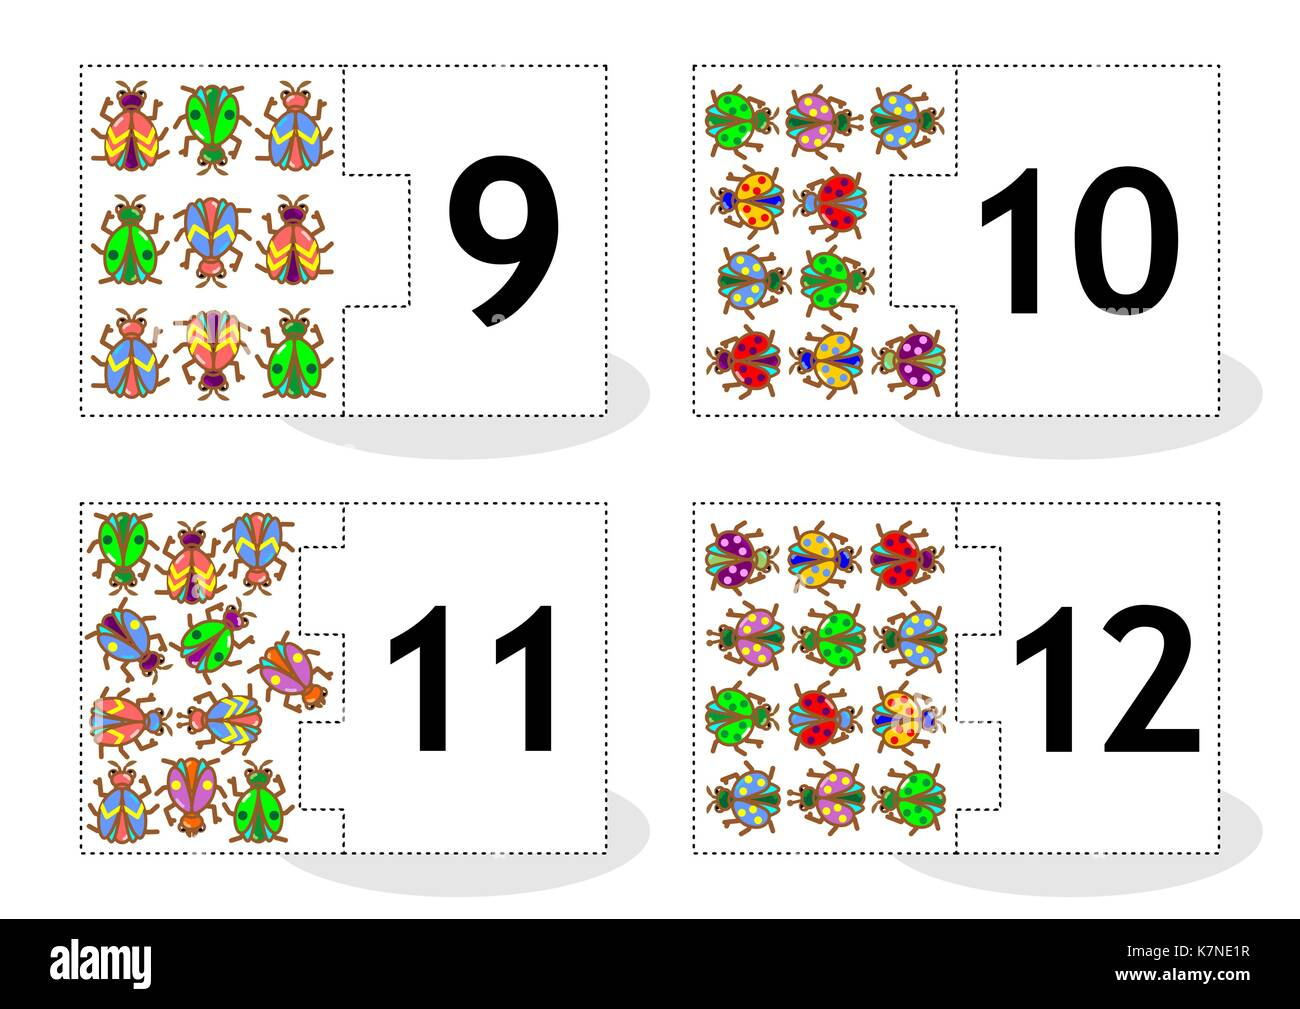 Learn counting 2-part puzzle cards to cut out and play, bugs and beetles themed, numbers 9 - 12 - Stock Image